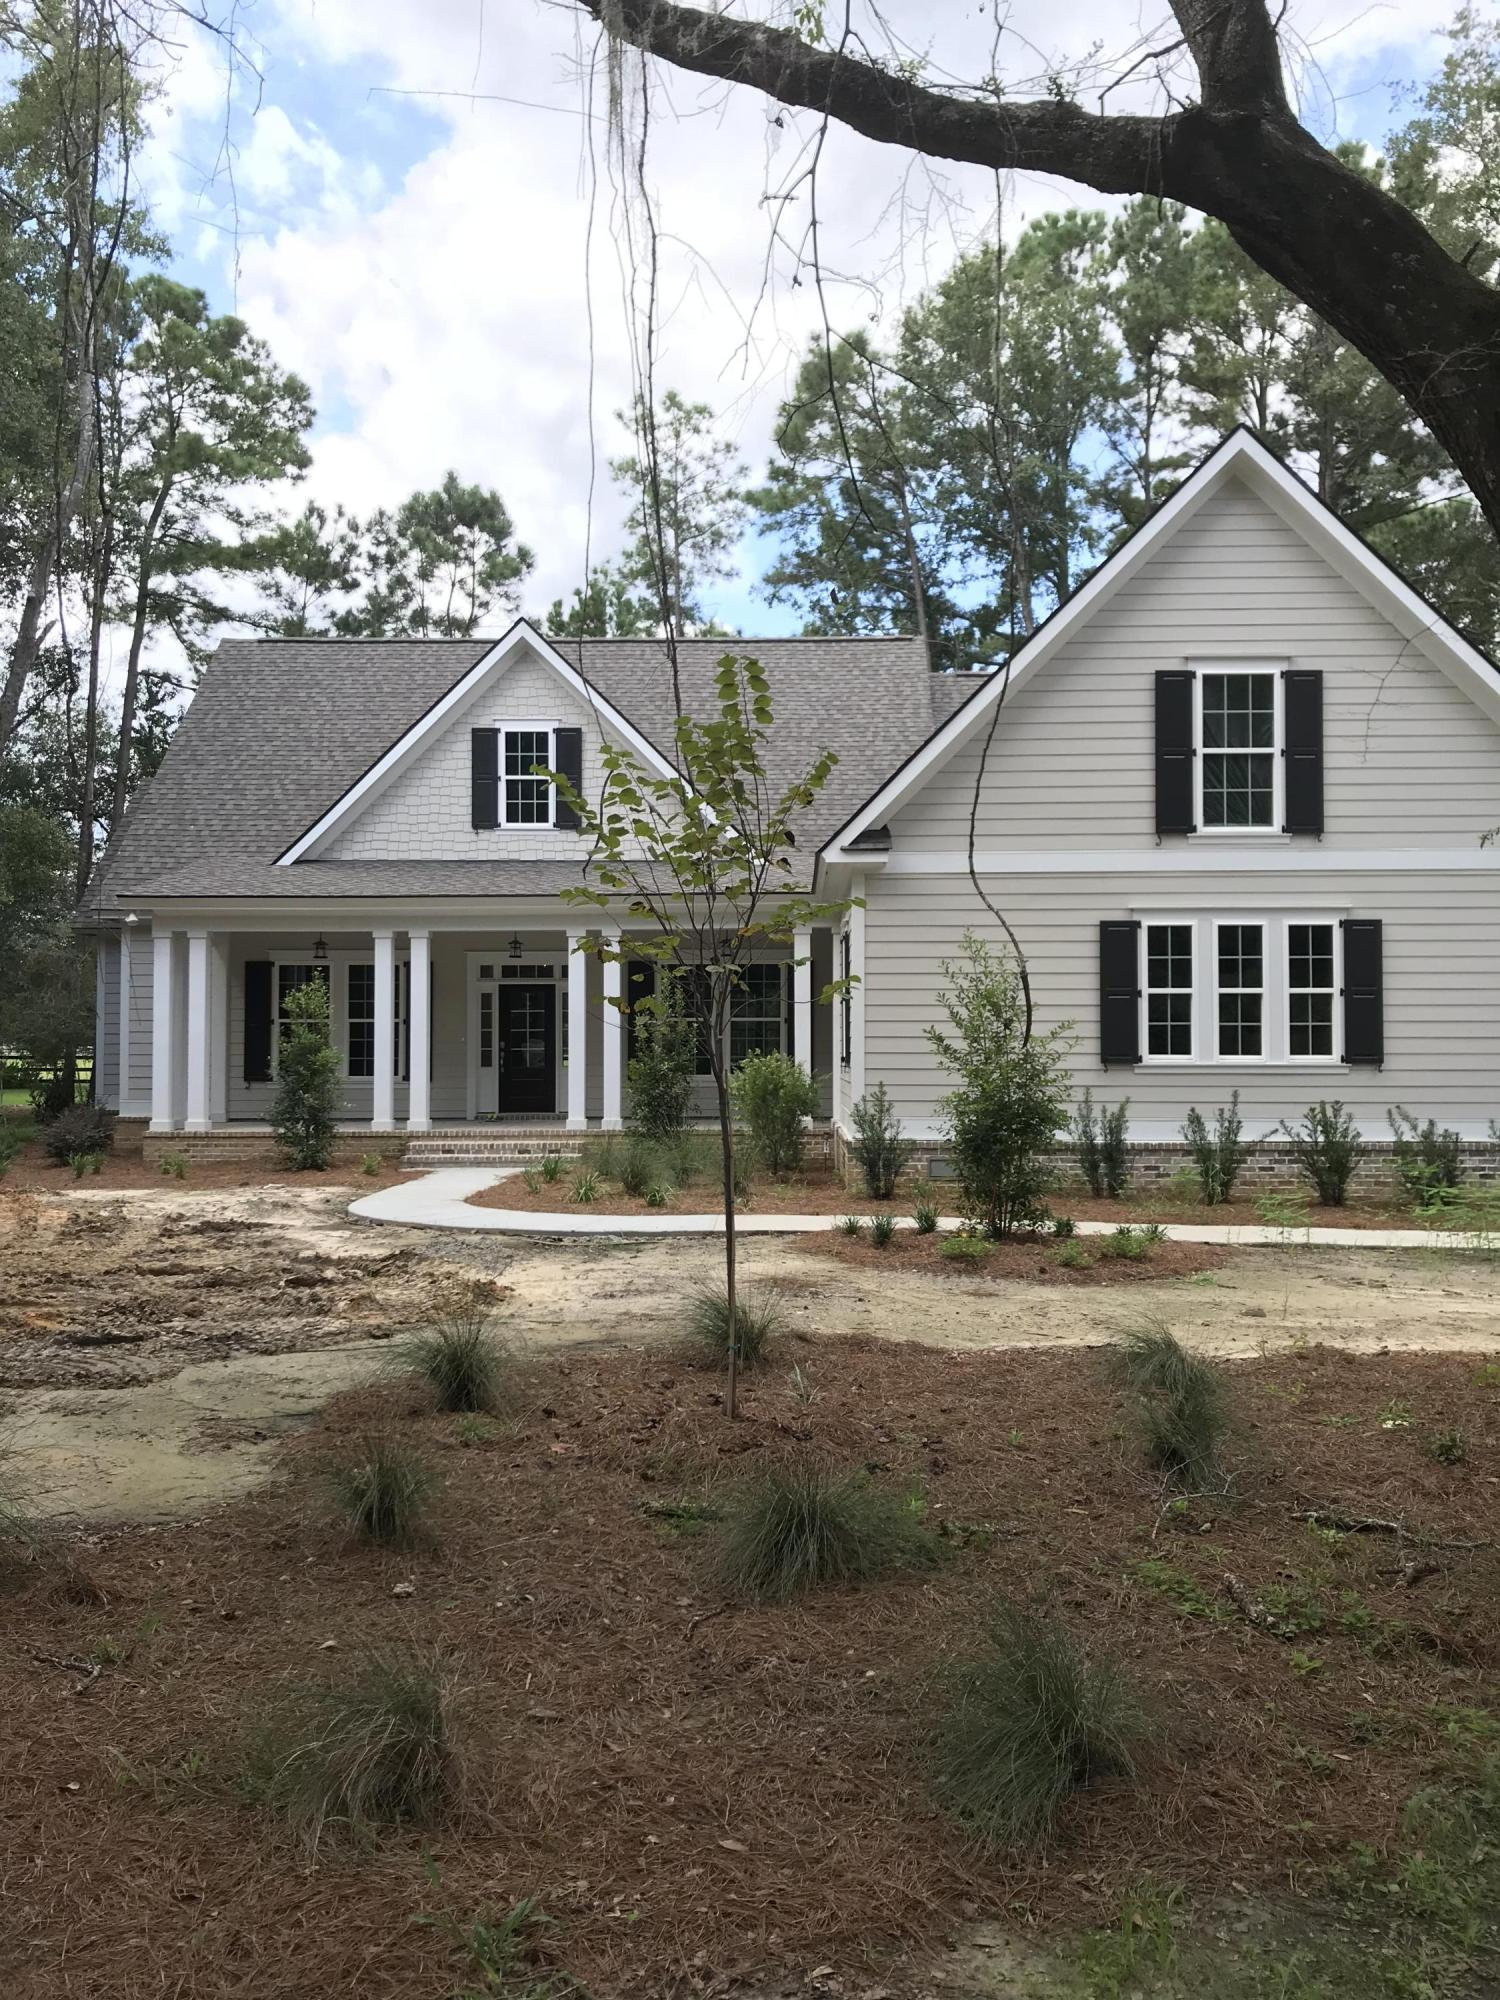 Stono Ferry Homes For Sale - 5235 Old Washington Course, Hollywood, SC - 9